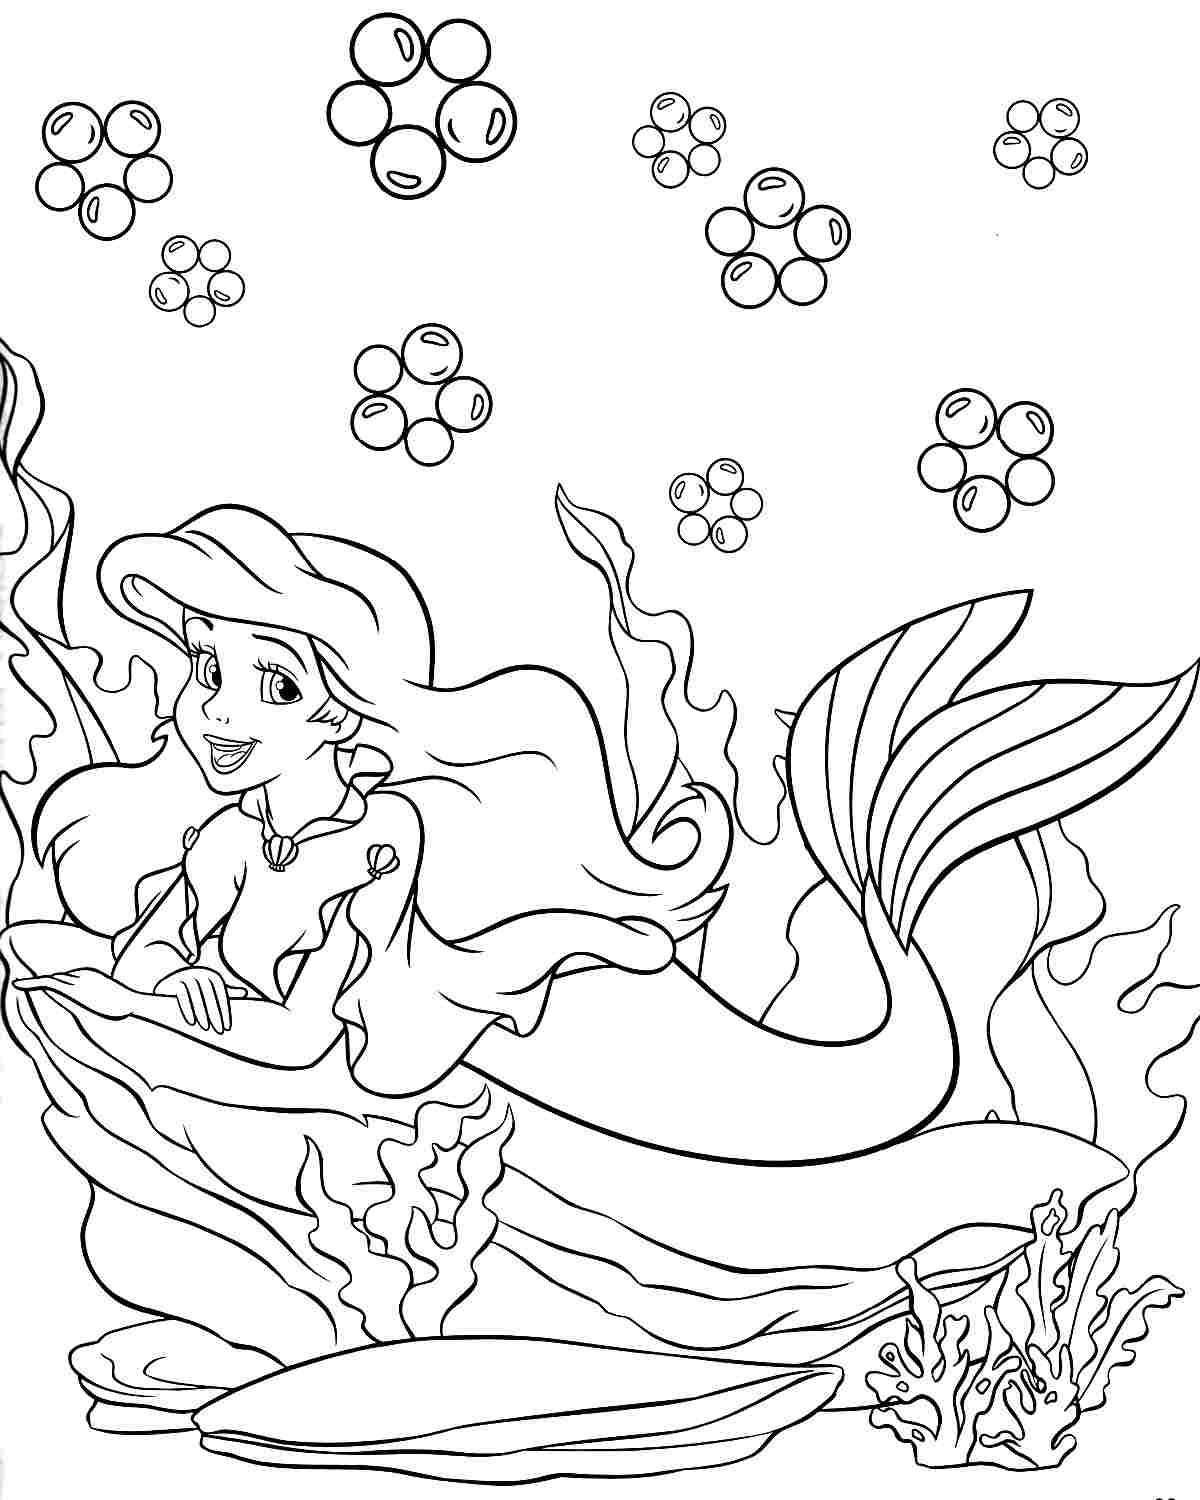 Happy Birthday Princess Coloring Pages At Getcolorings